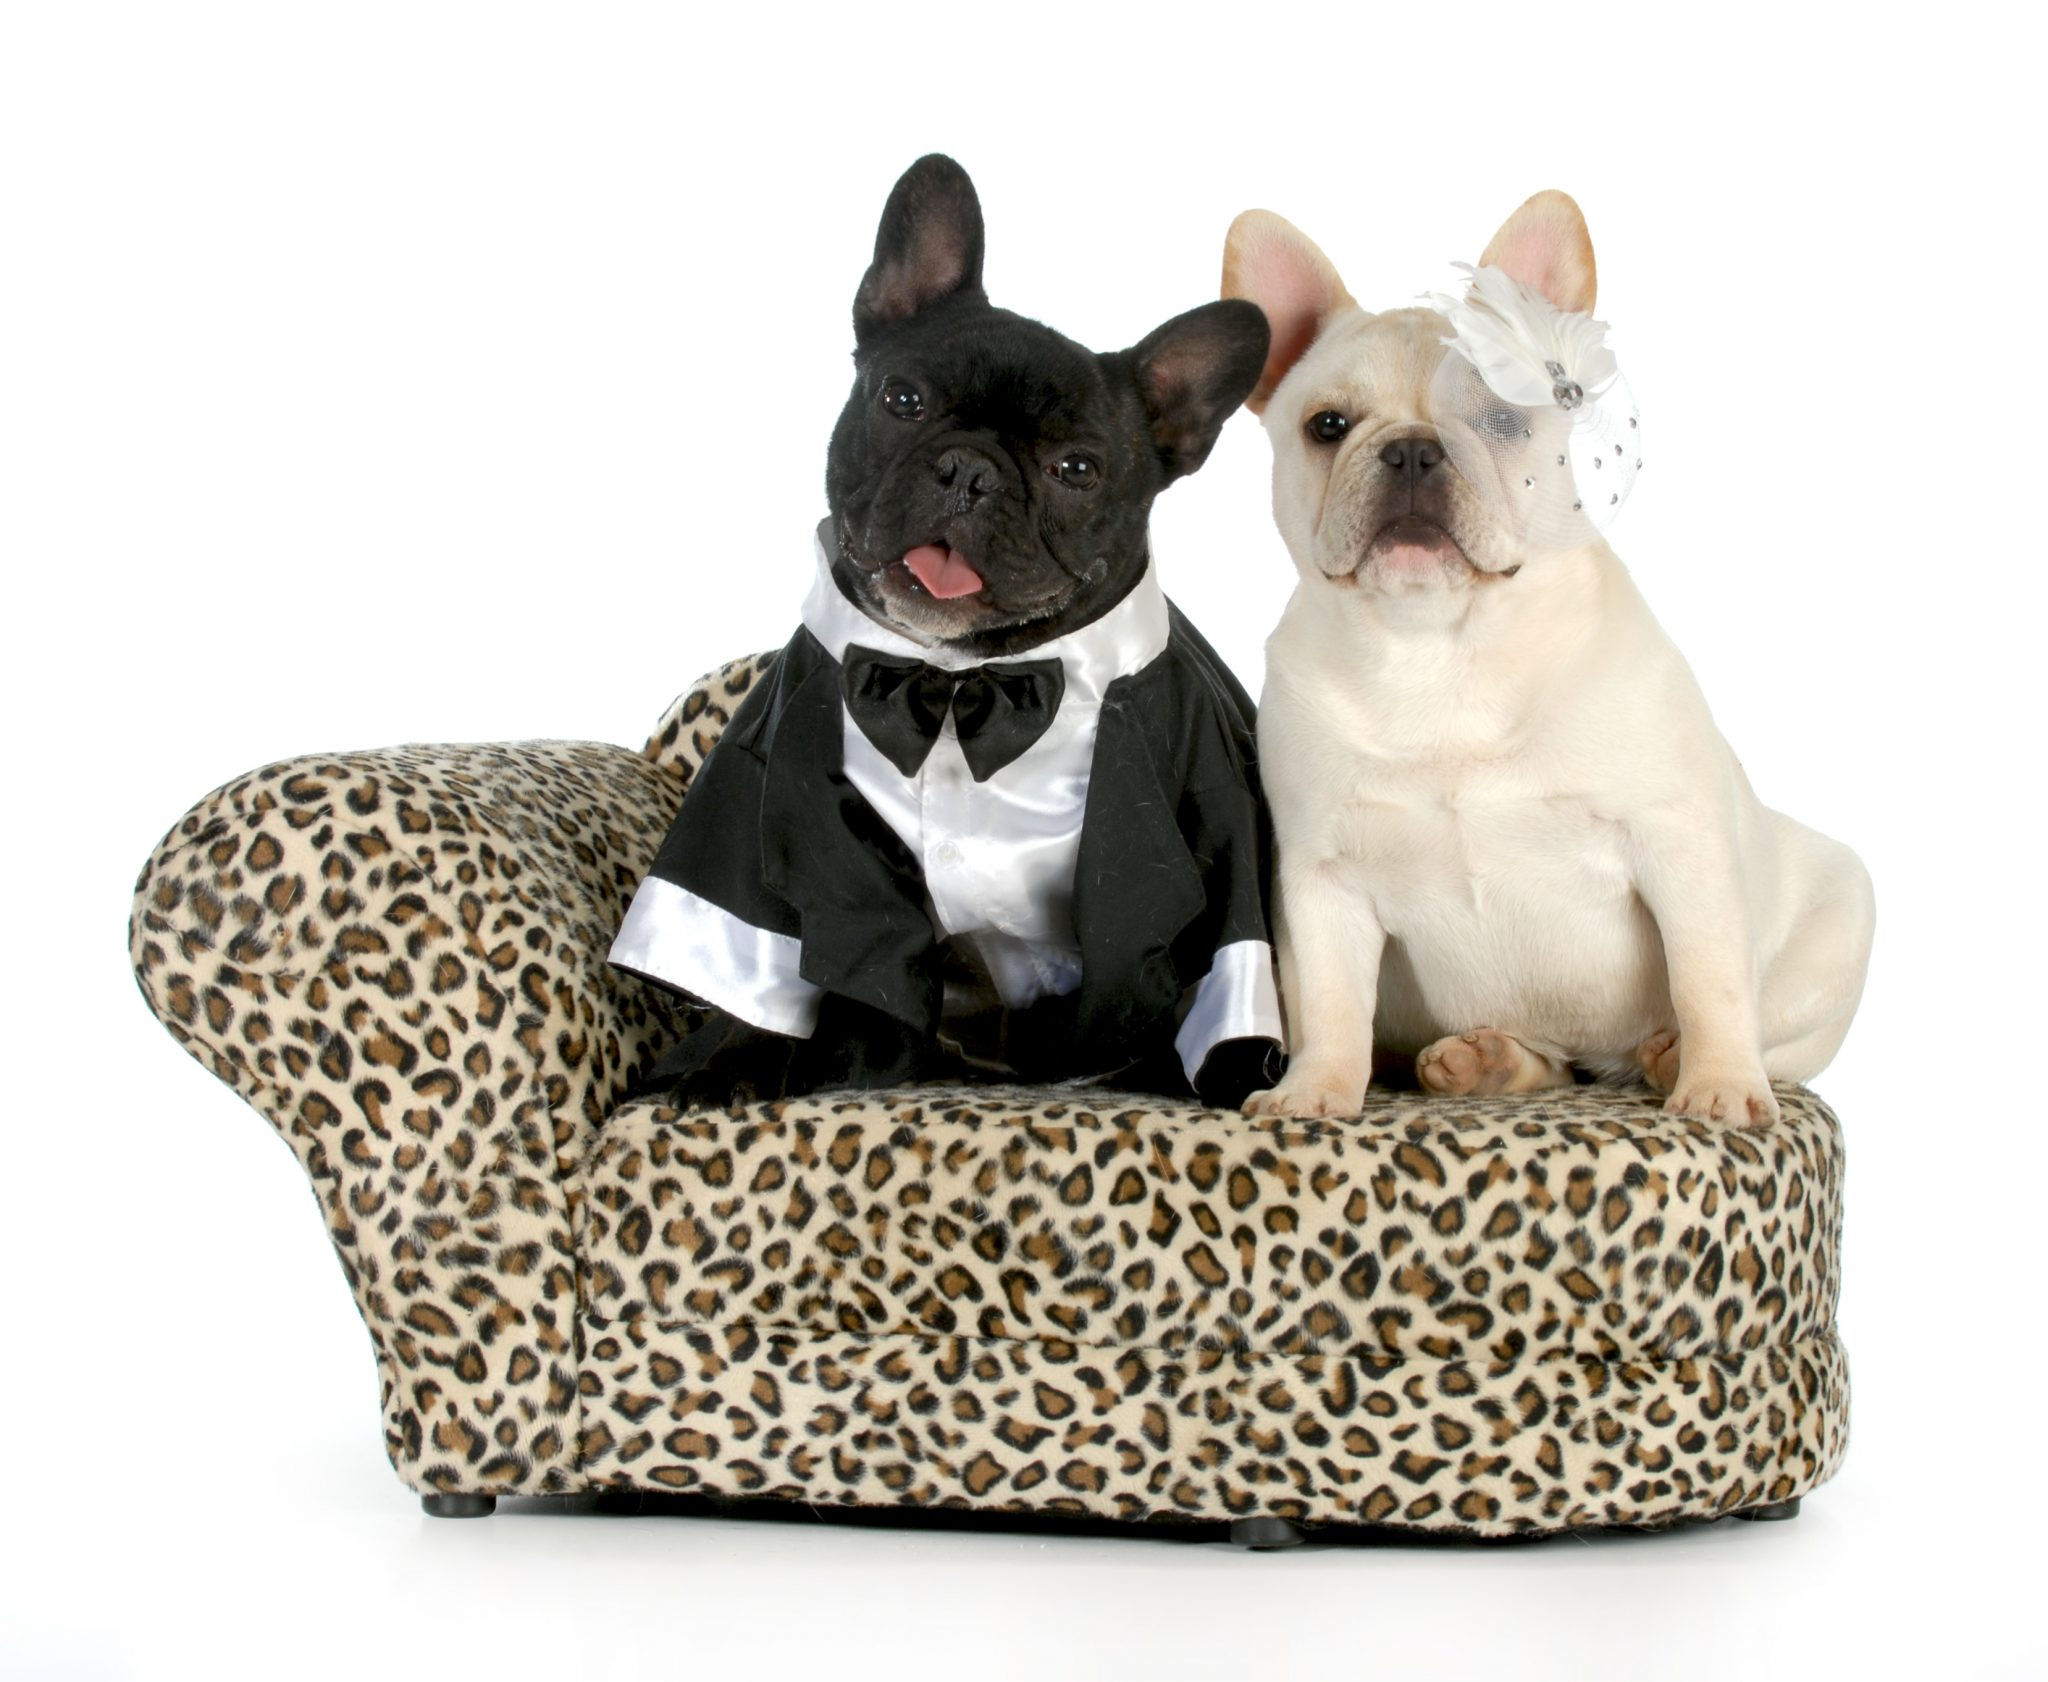 French Bulldogs dressed as a bride and groom.